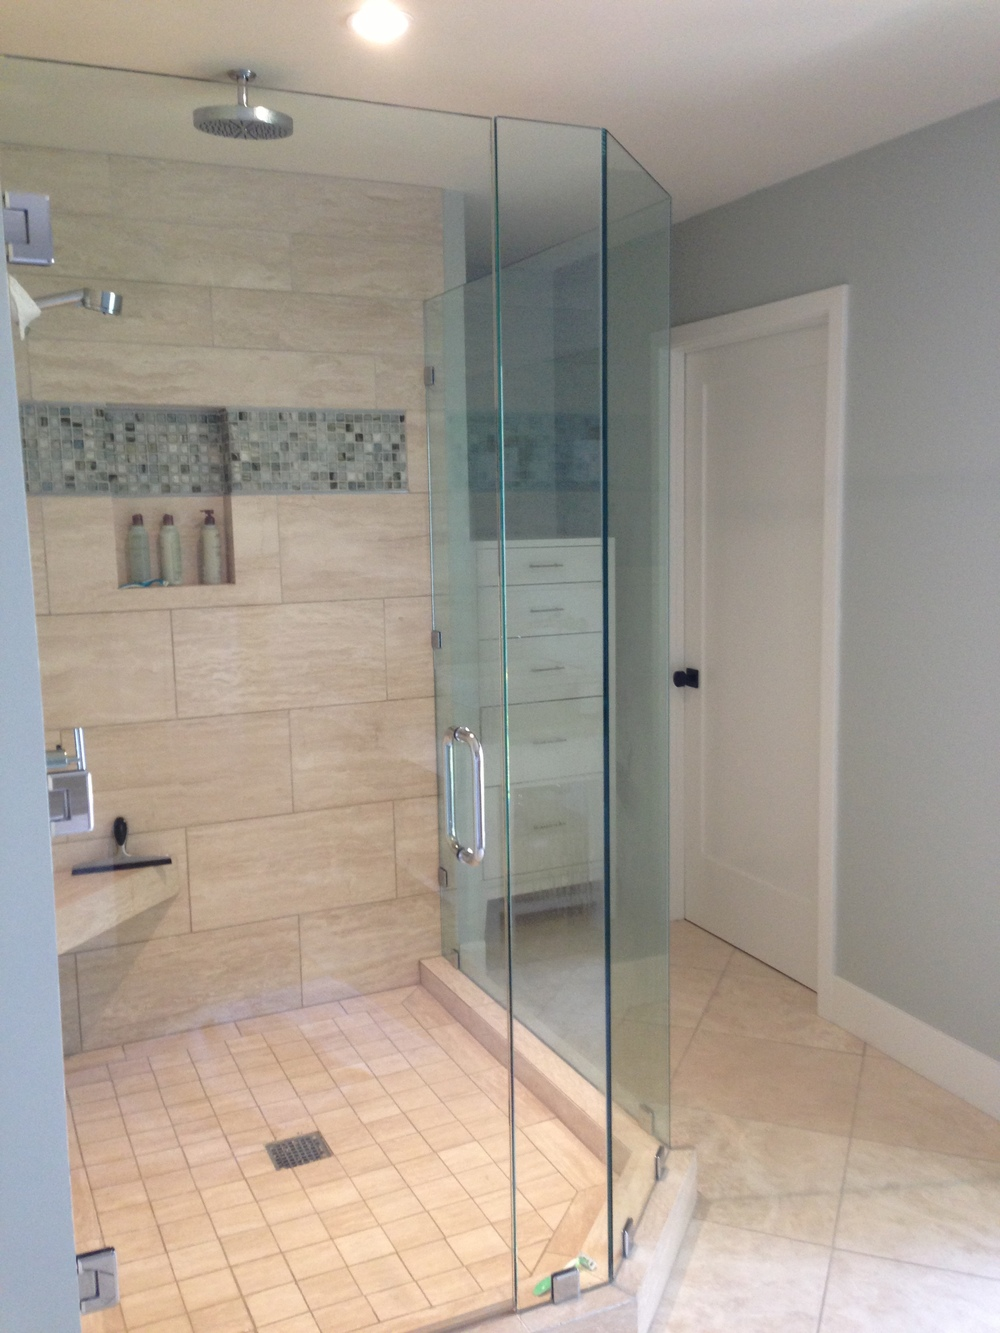 Kws: master shower Lunada Bay Sumi-E glass tile Walker Zanger - Ventura California rent house review tour Gilliard Lane ocean island vacation real estate interior design inspiration